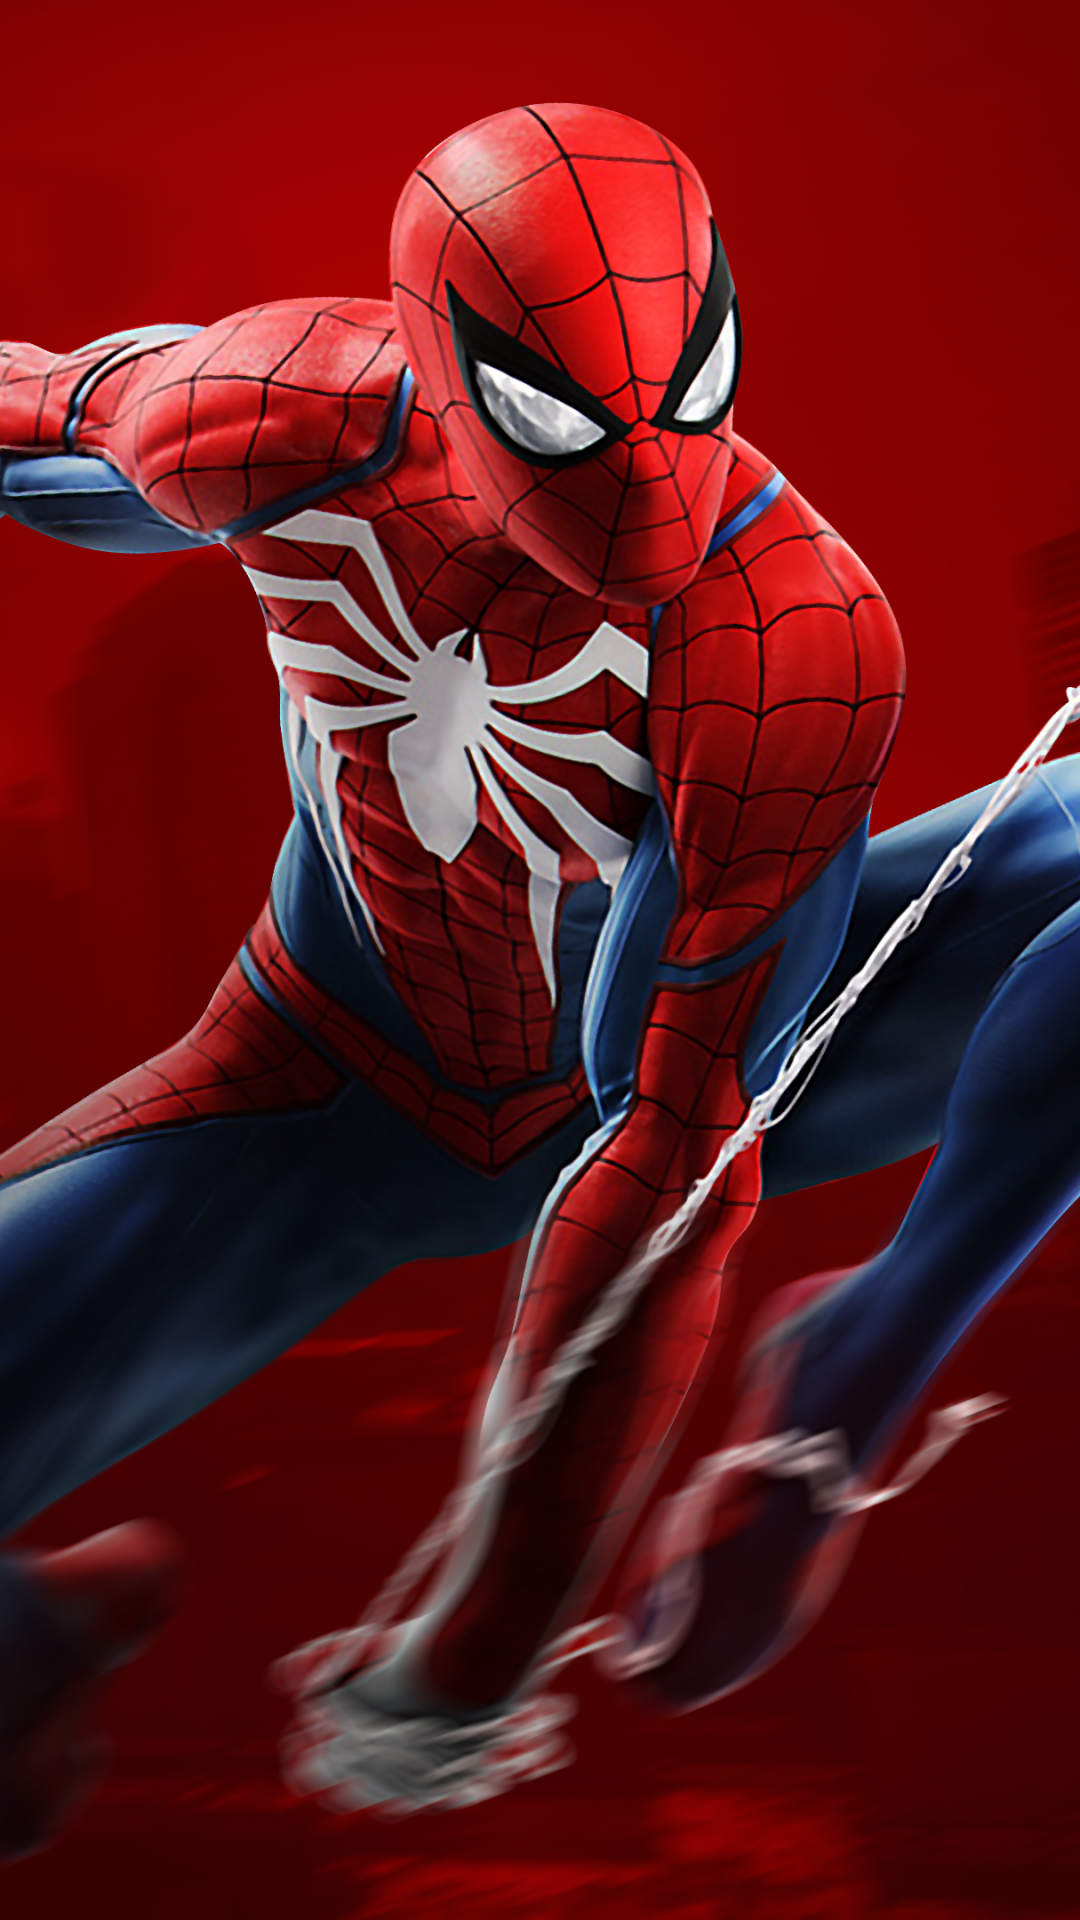 Video Game Spider Man Ps4 1080x1920 Wallpaper Id 718071